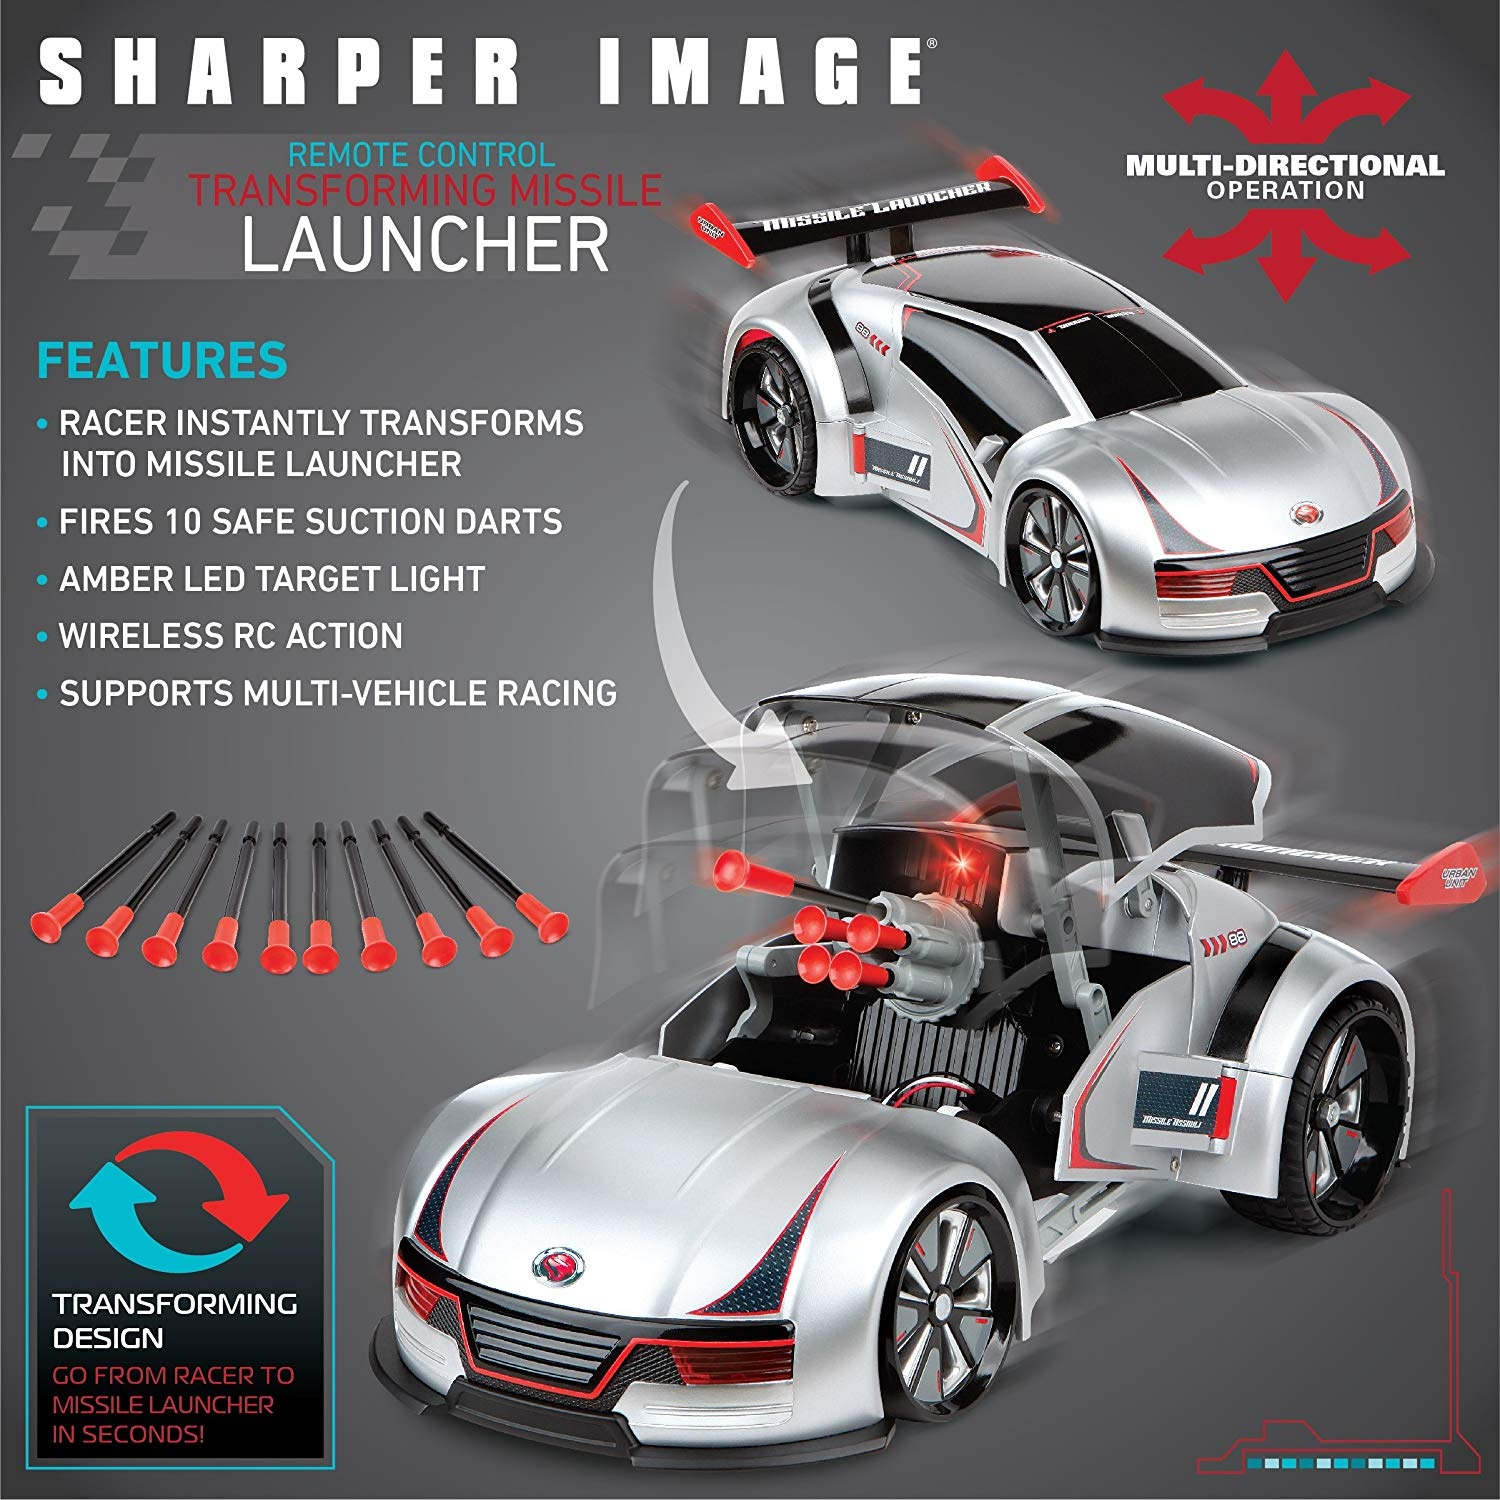 Sharper Image Transforming Rc Missile Launcher Race Car Battle Toy With Led Target Light Spoiler Includes Ten Safe Suction Cup Firing Darts Remote Control W Transformer Button By Sharper Image Shop Online